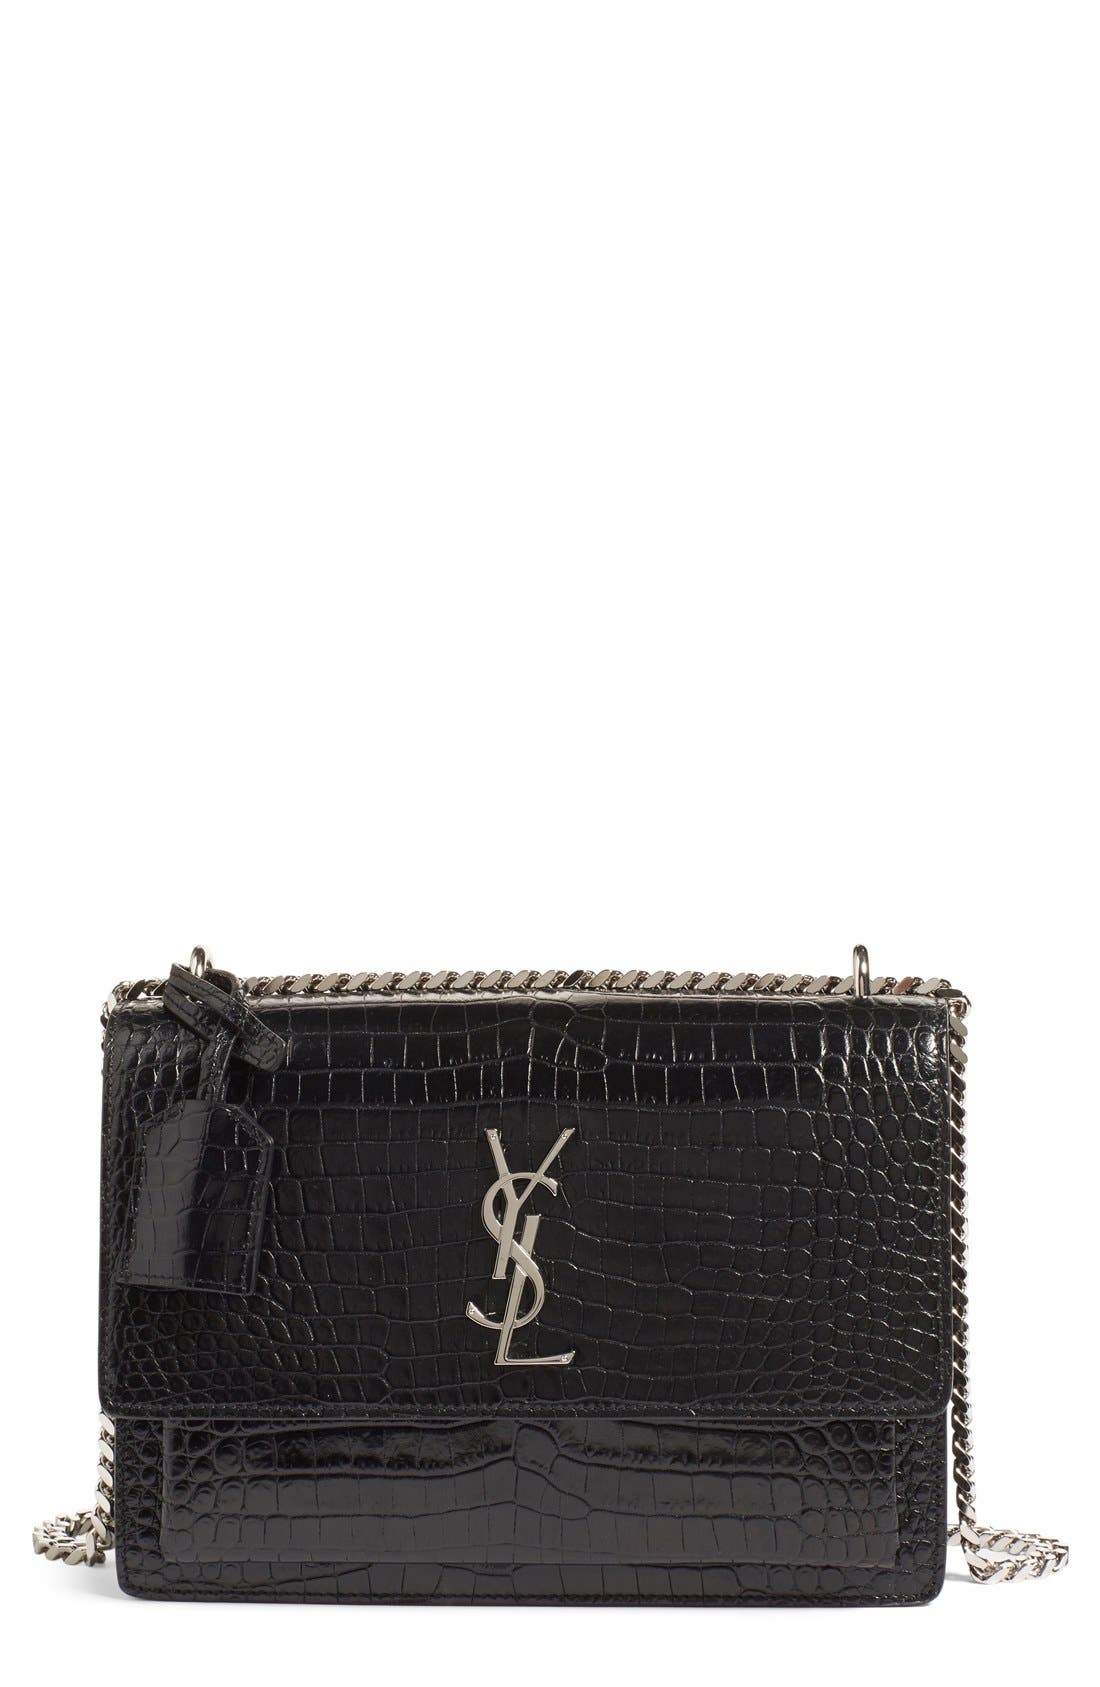 'Medium Monogram Sunset' Croc Embossed Leather Shoulder Bag,                         Main,                         color, NERO